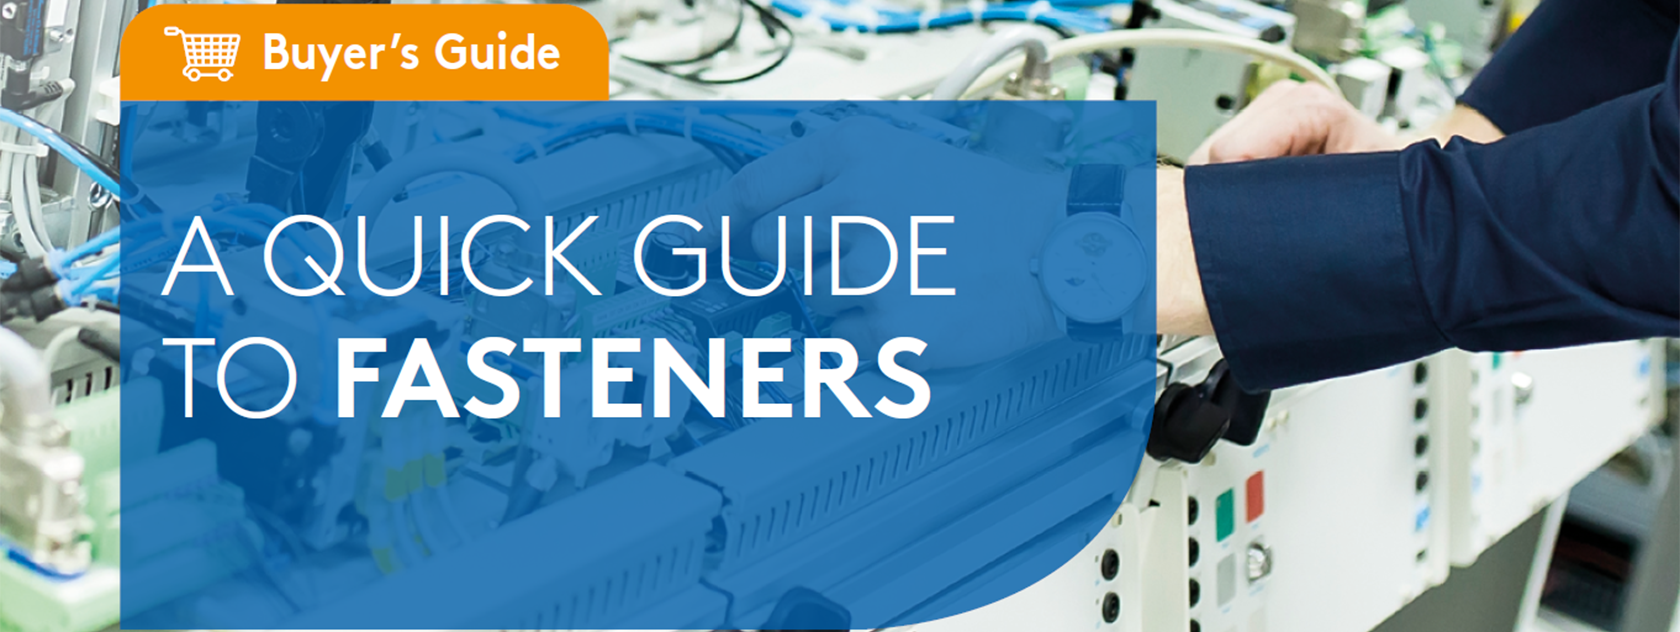 A quick buyer's guide to fasteners